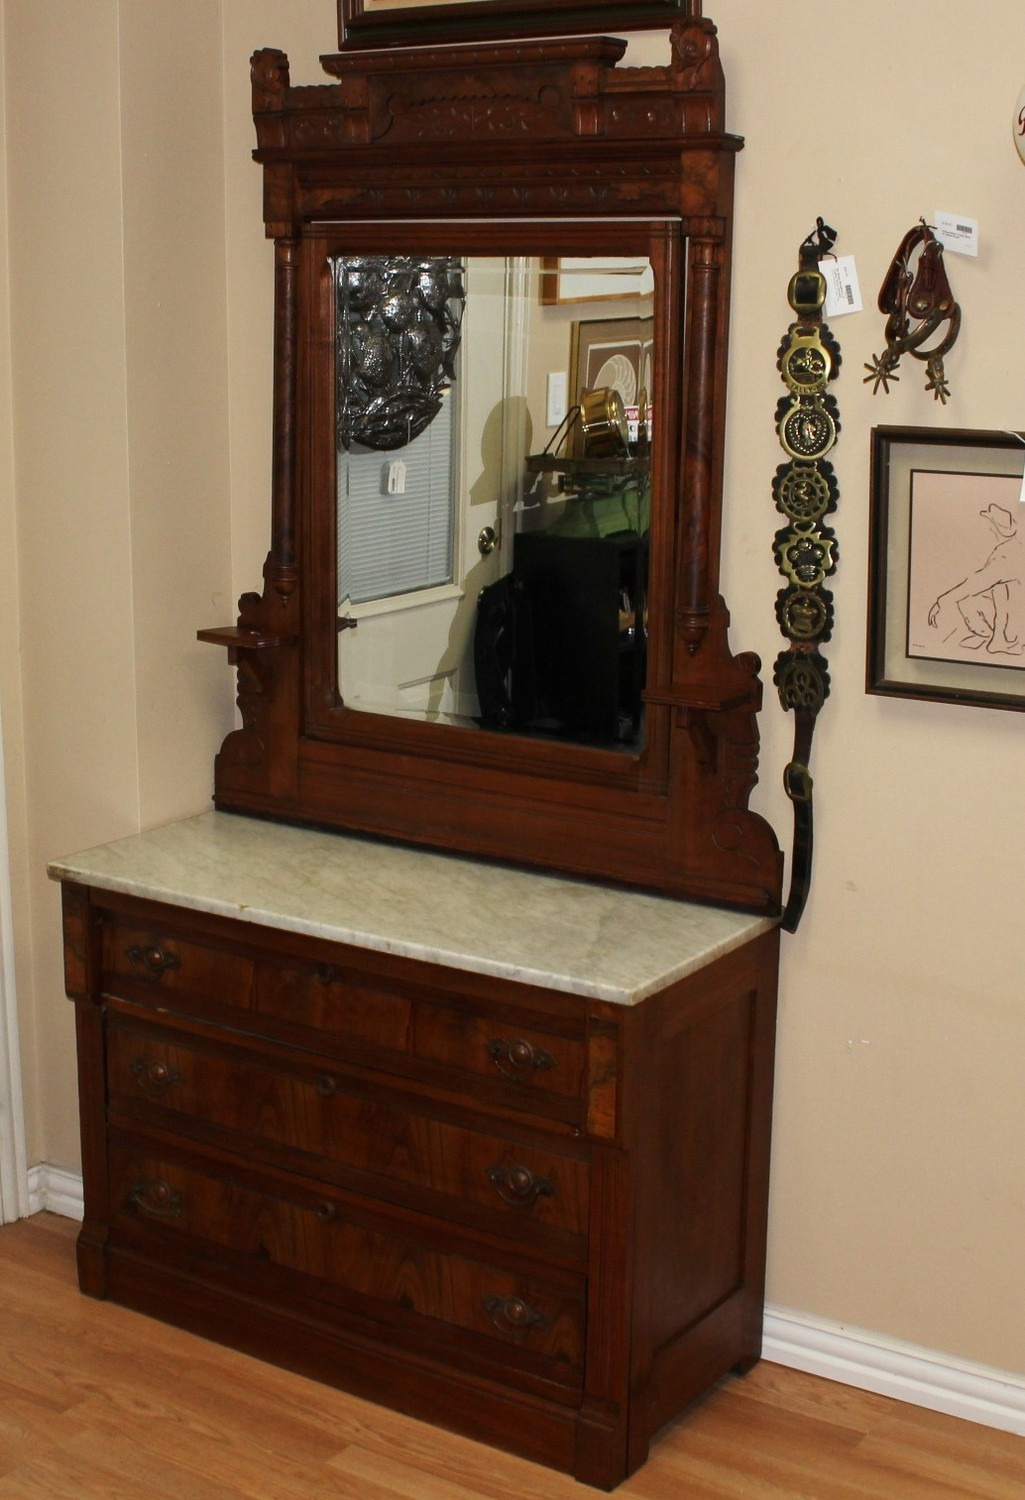 Antique Eastlake Burl Walnut Marble Top Dresser Tilt Mirror & Candle Shelves p